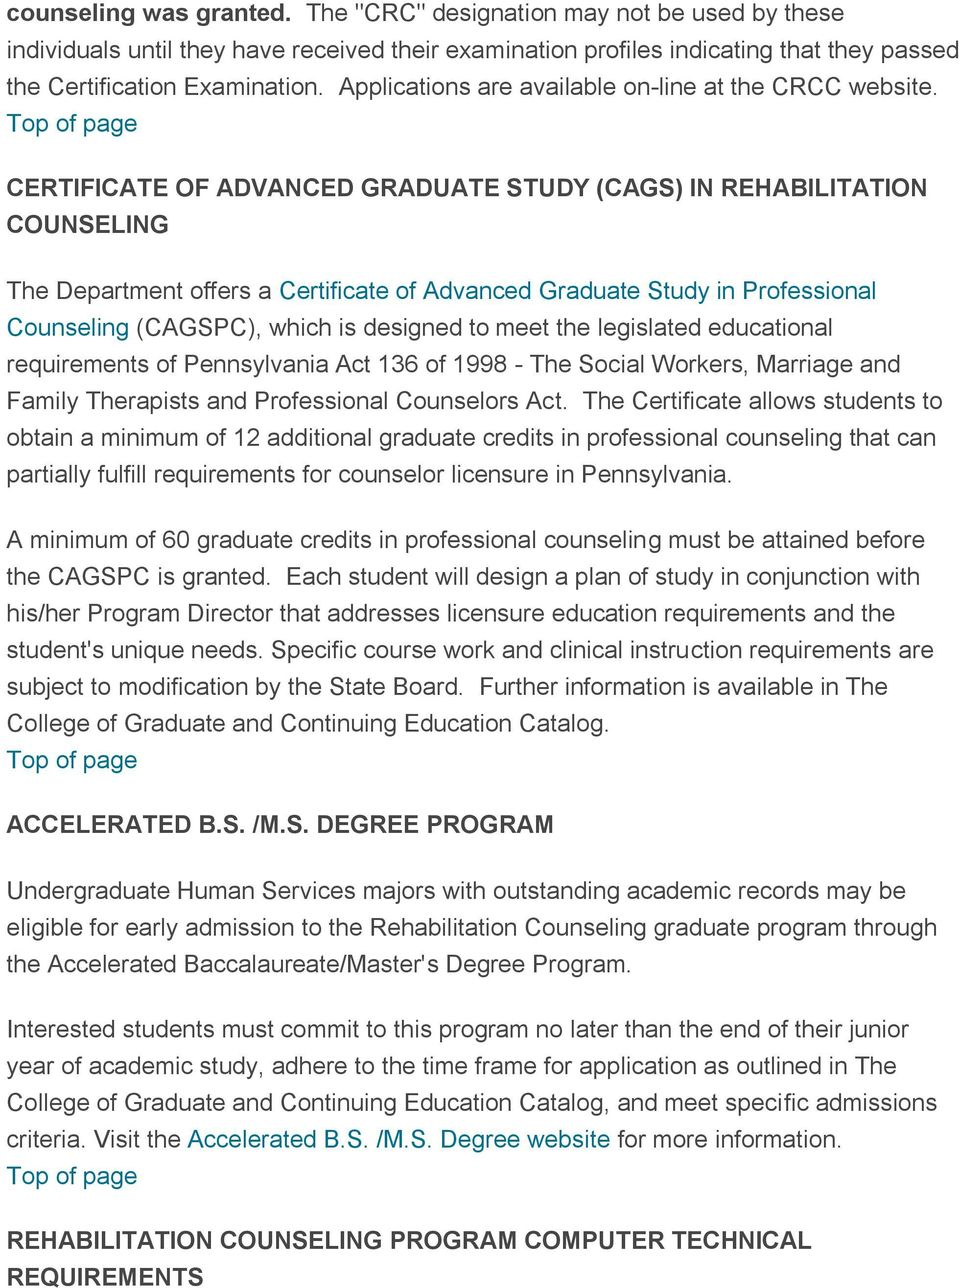 CERTIFICATE OF ADVANCED GRADUATE STUDY (CAGS) IN REHABILITATION COUNSELING The Department offers a Certificate of Advanced Graduate Study in Professional Counseling (CAGSPC), which is designed to